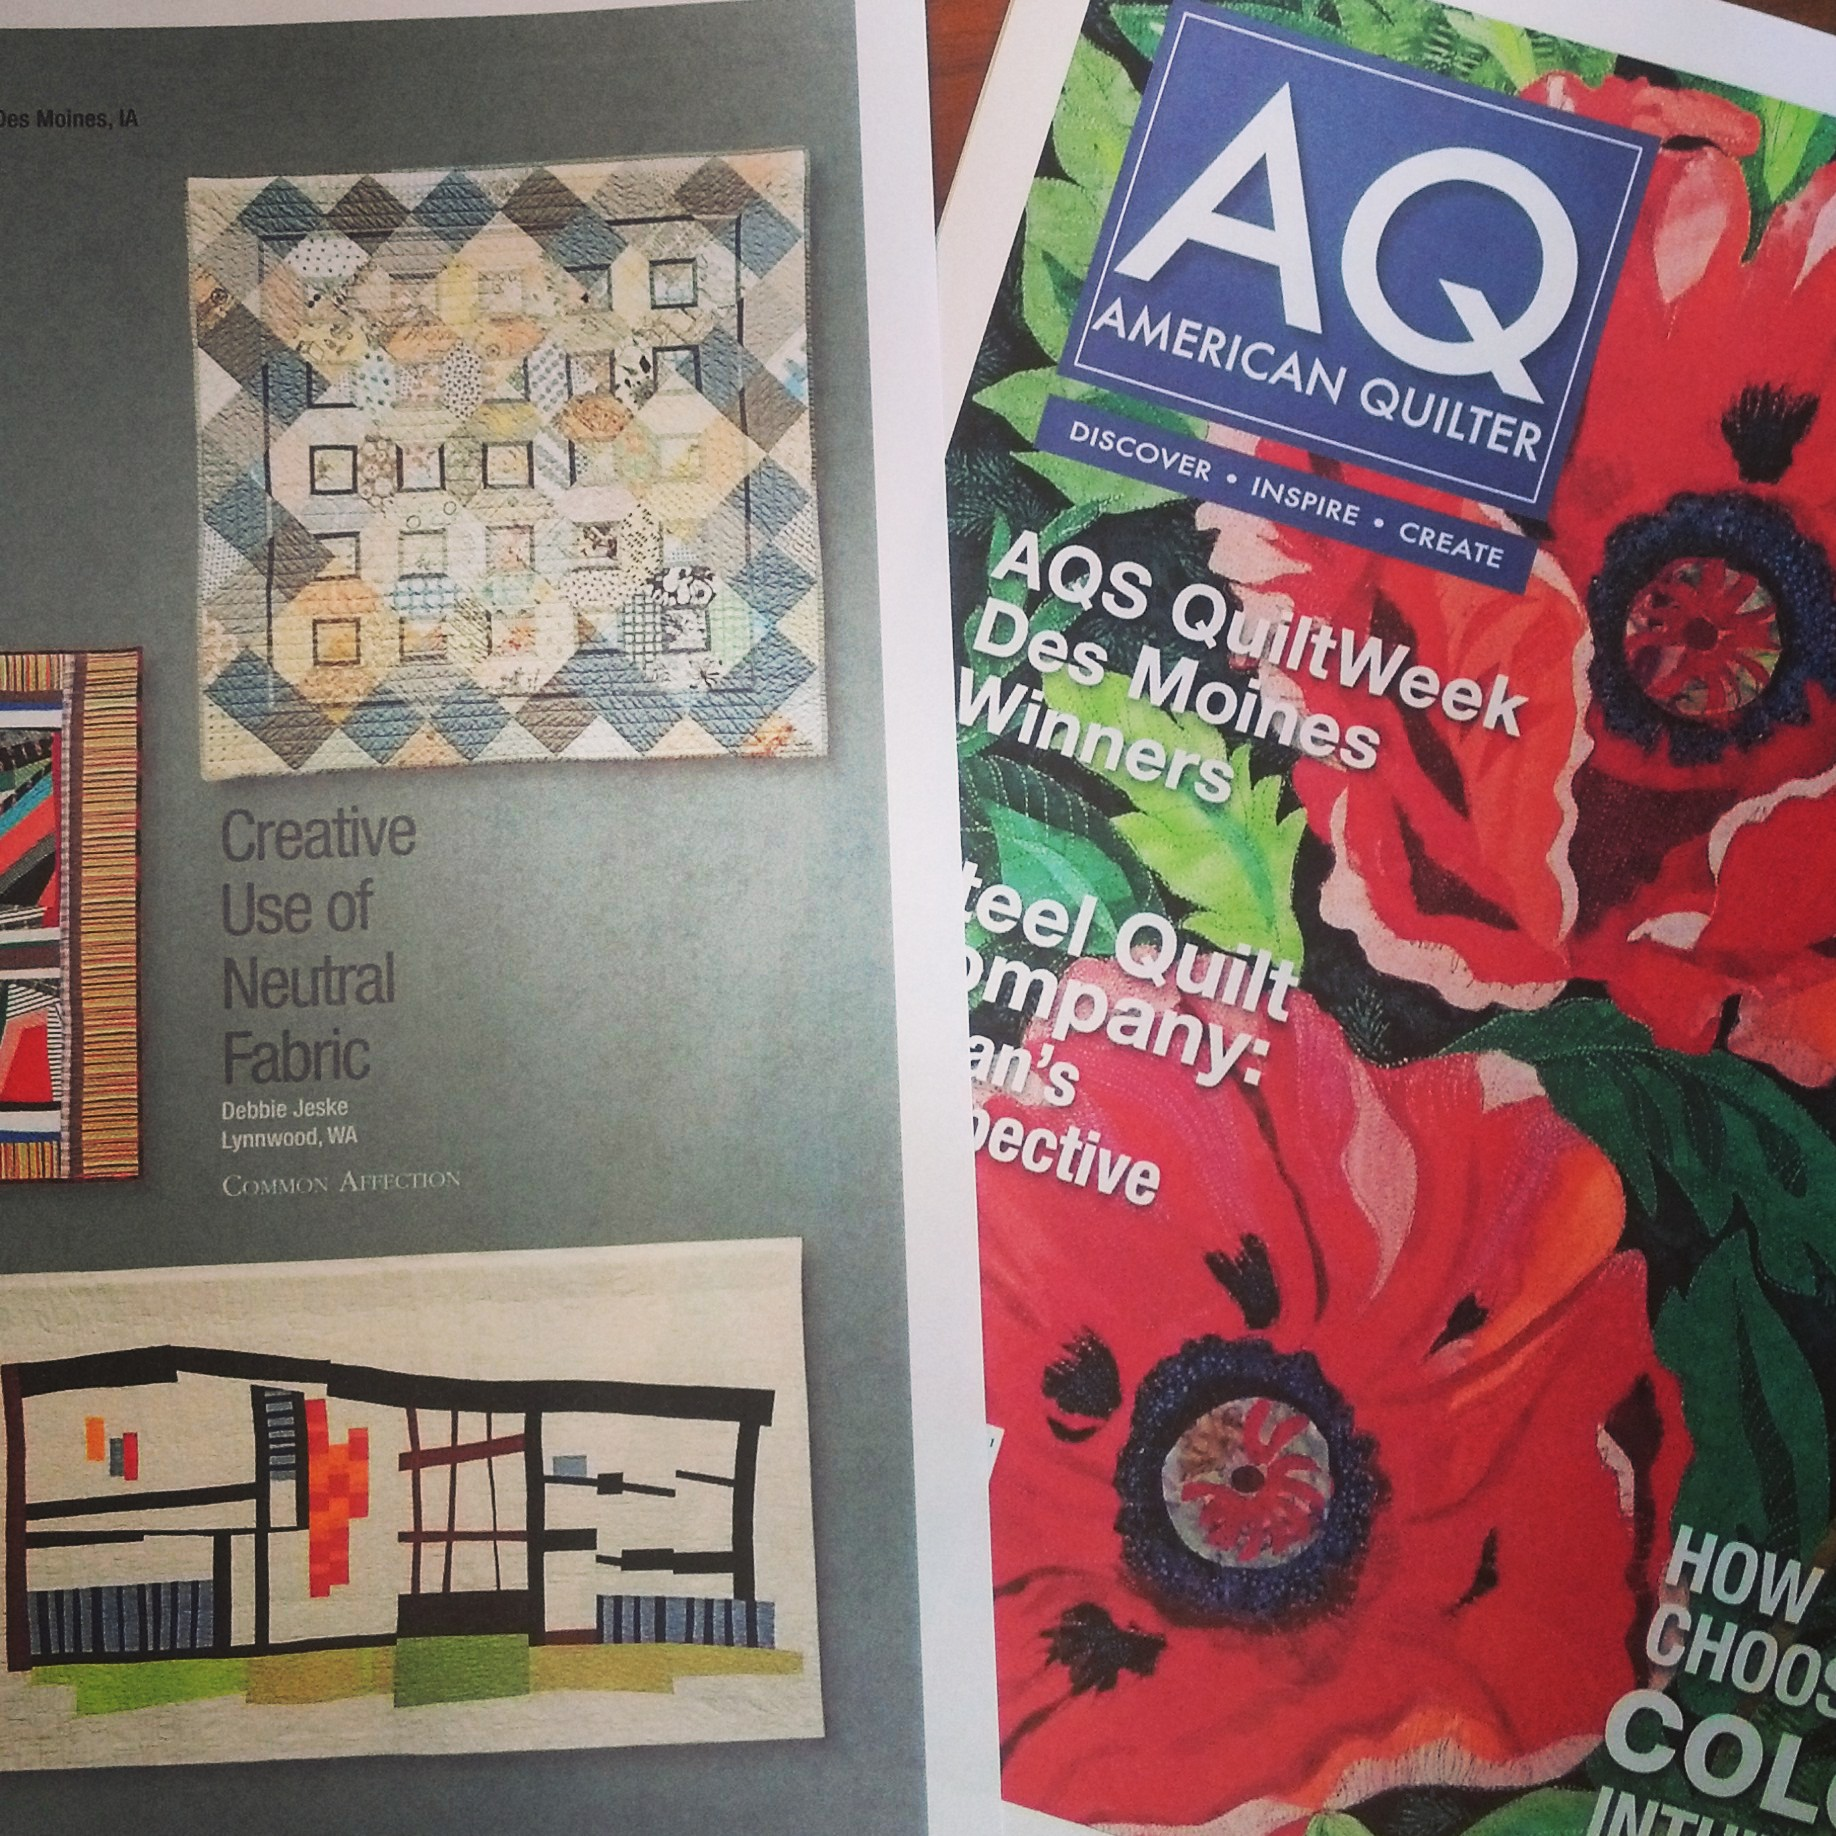 """Common Affection"" in American Quilter Magazine, January 2014 issue"